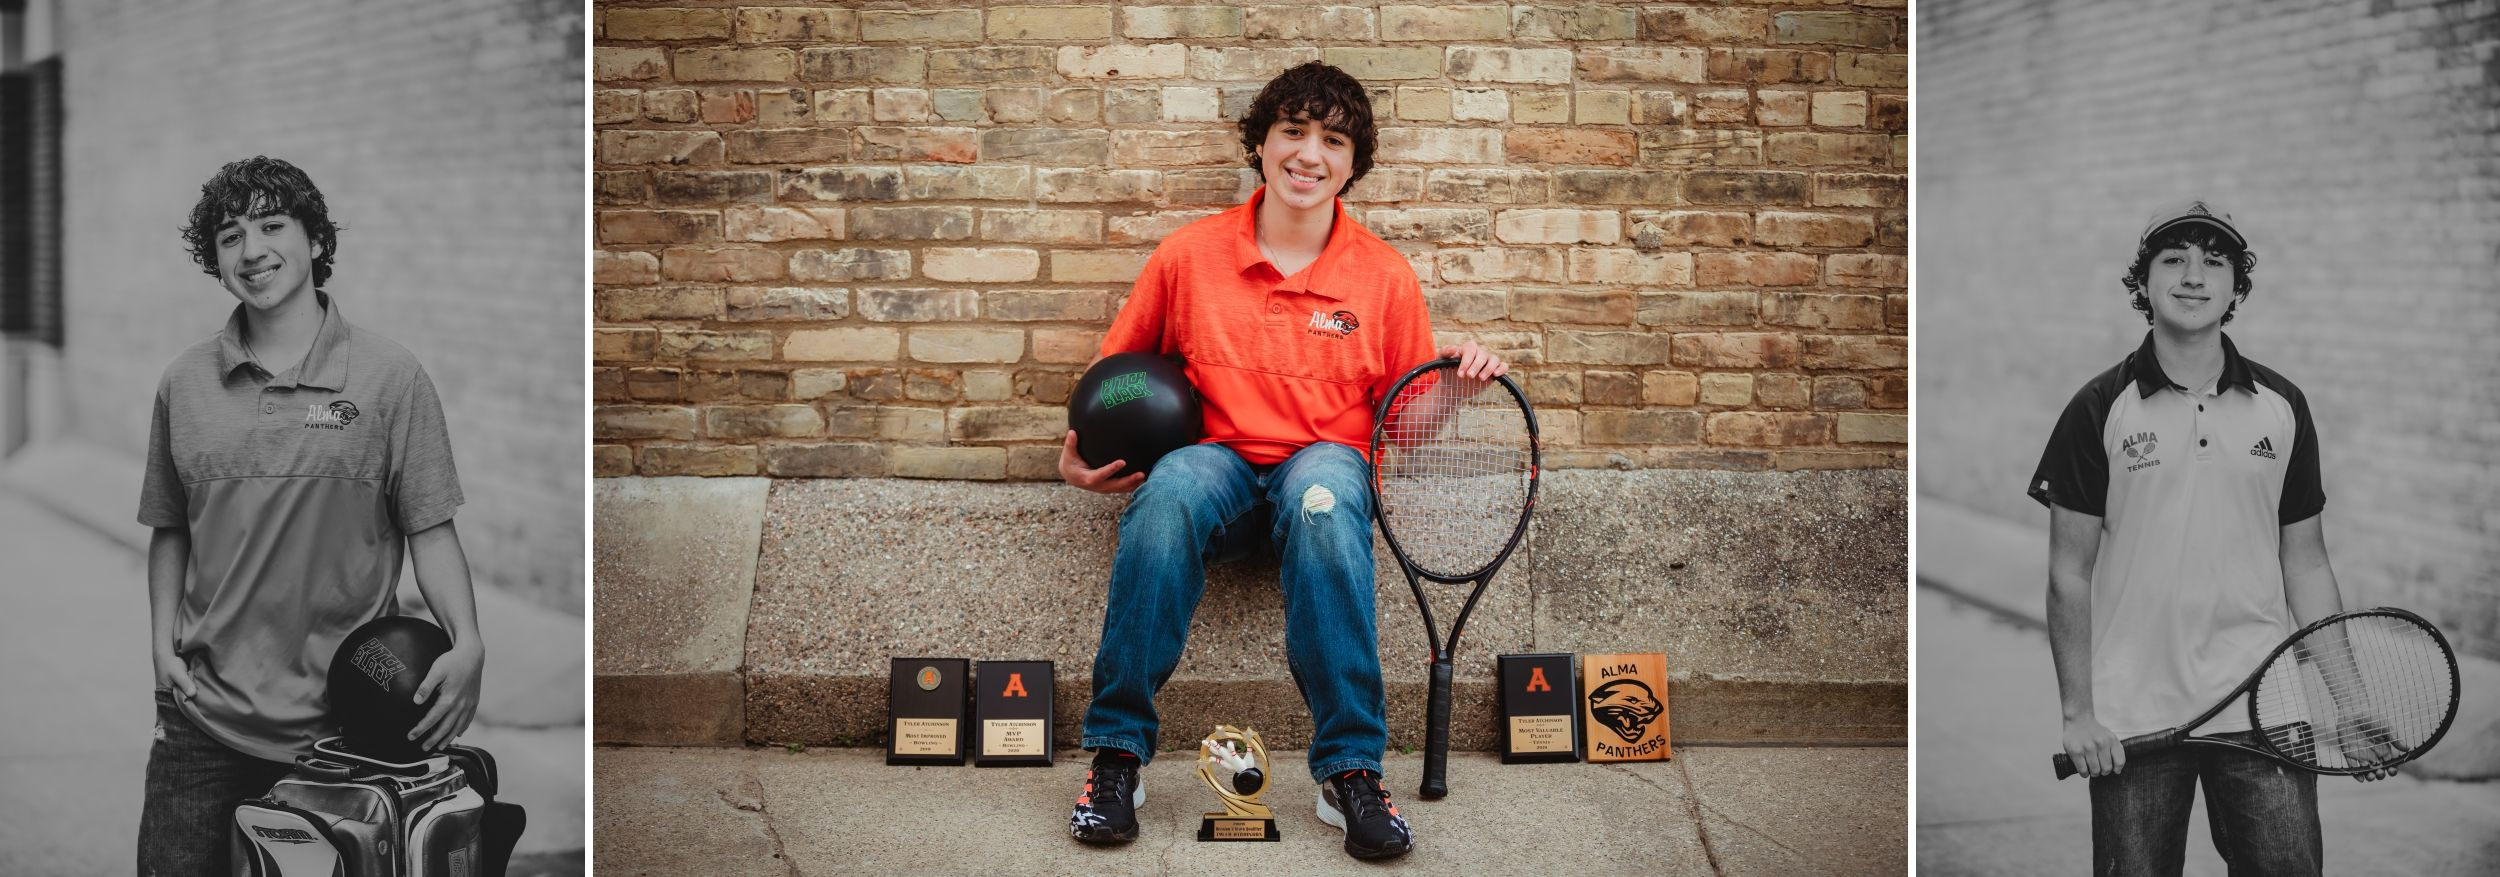 High school senior boy in an alley with his tennis and bowling gear.